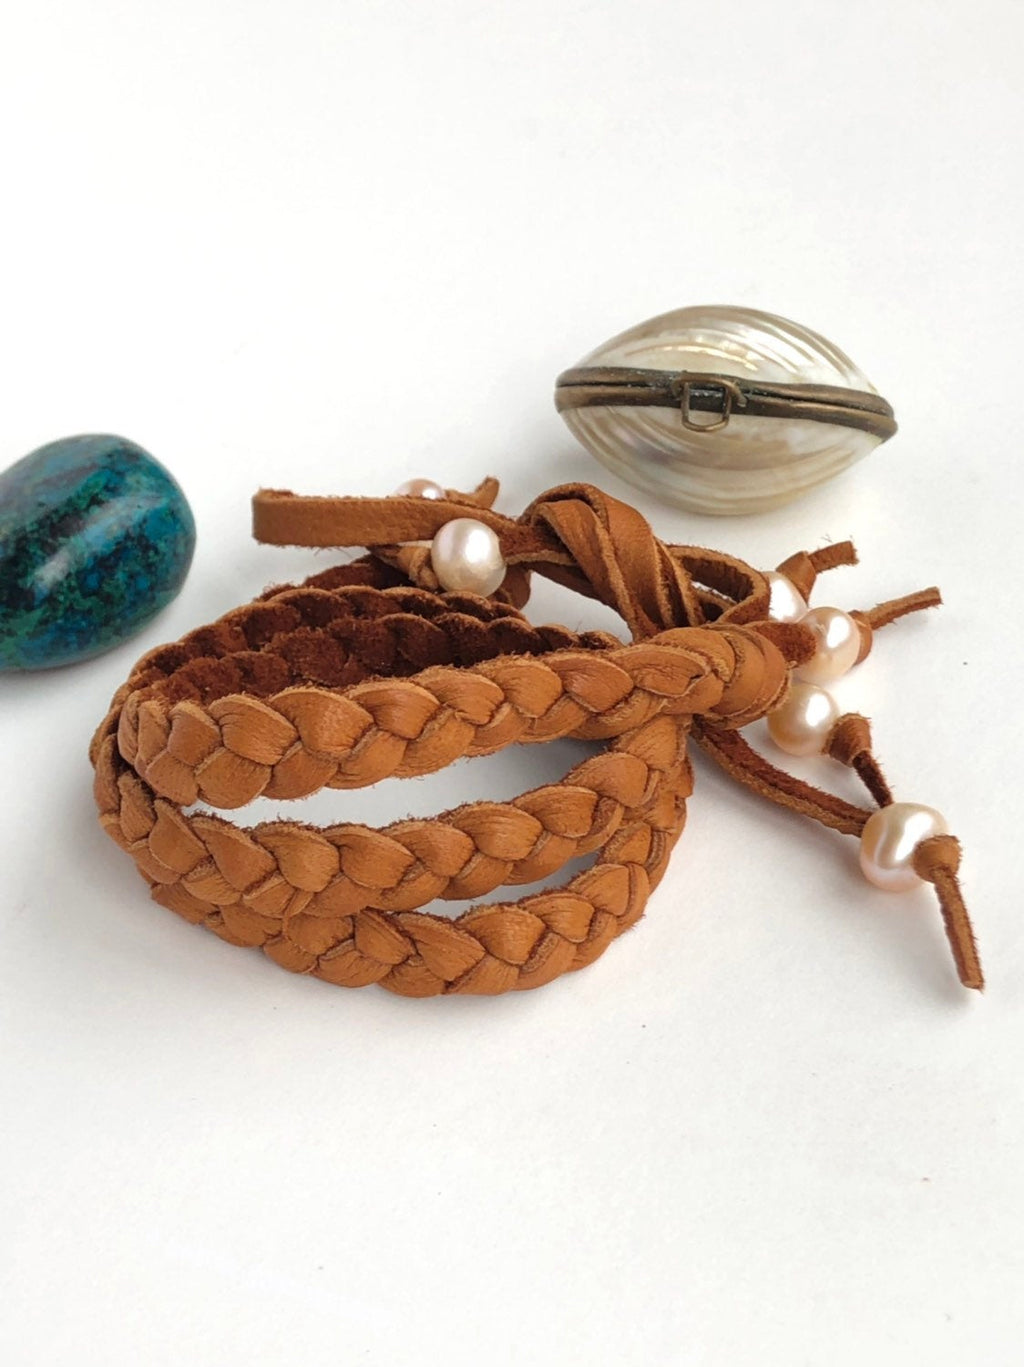 Leather Wrap Bracelet / Braided Deerskin Leather / Saddle Brown Leather / Western Jewelry / Pink Pearls / Fringe Charm Bracelet / Versatile